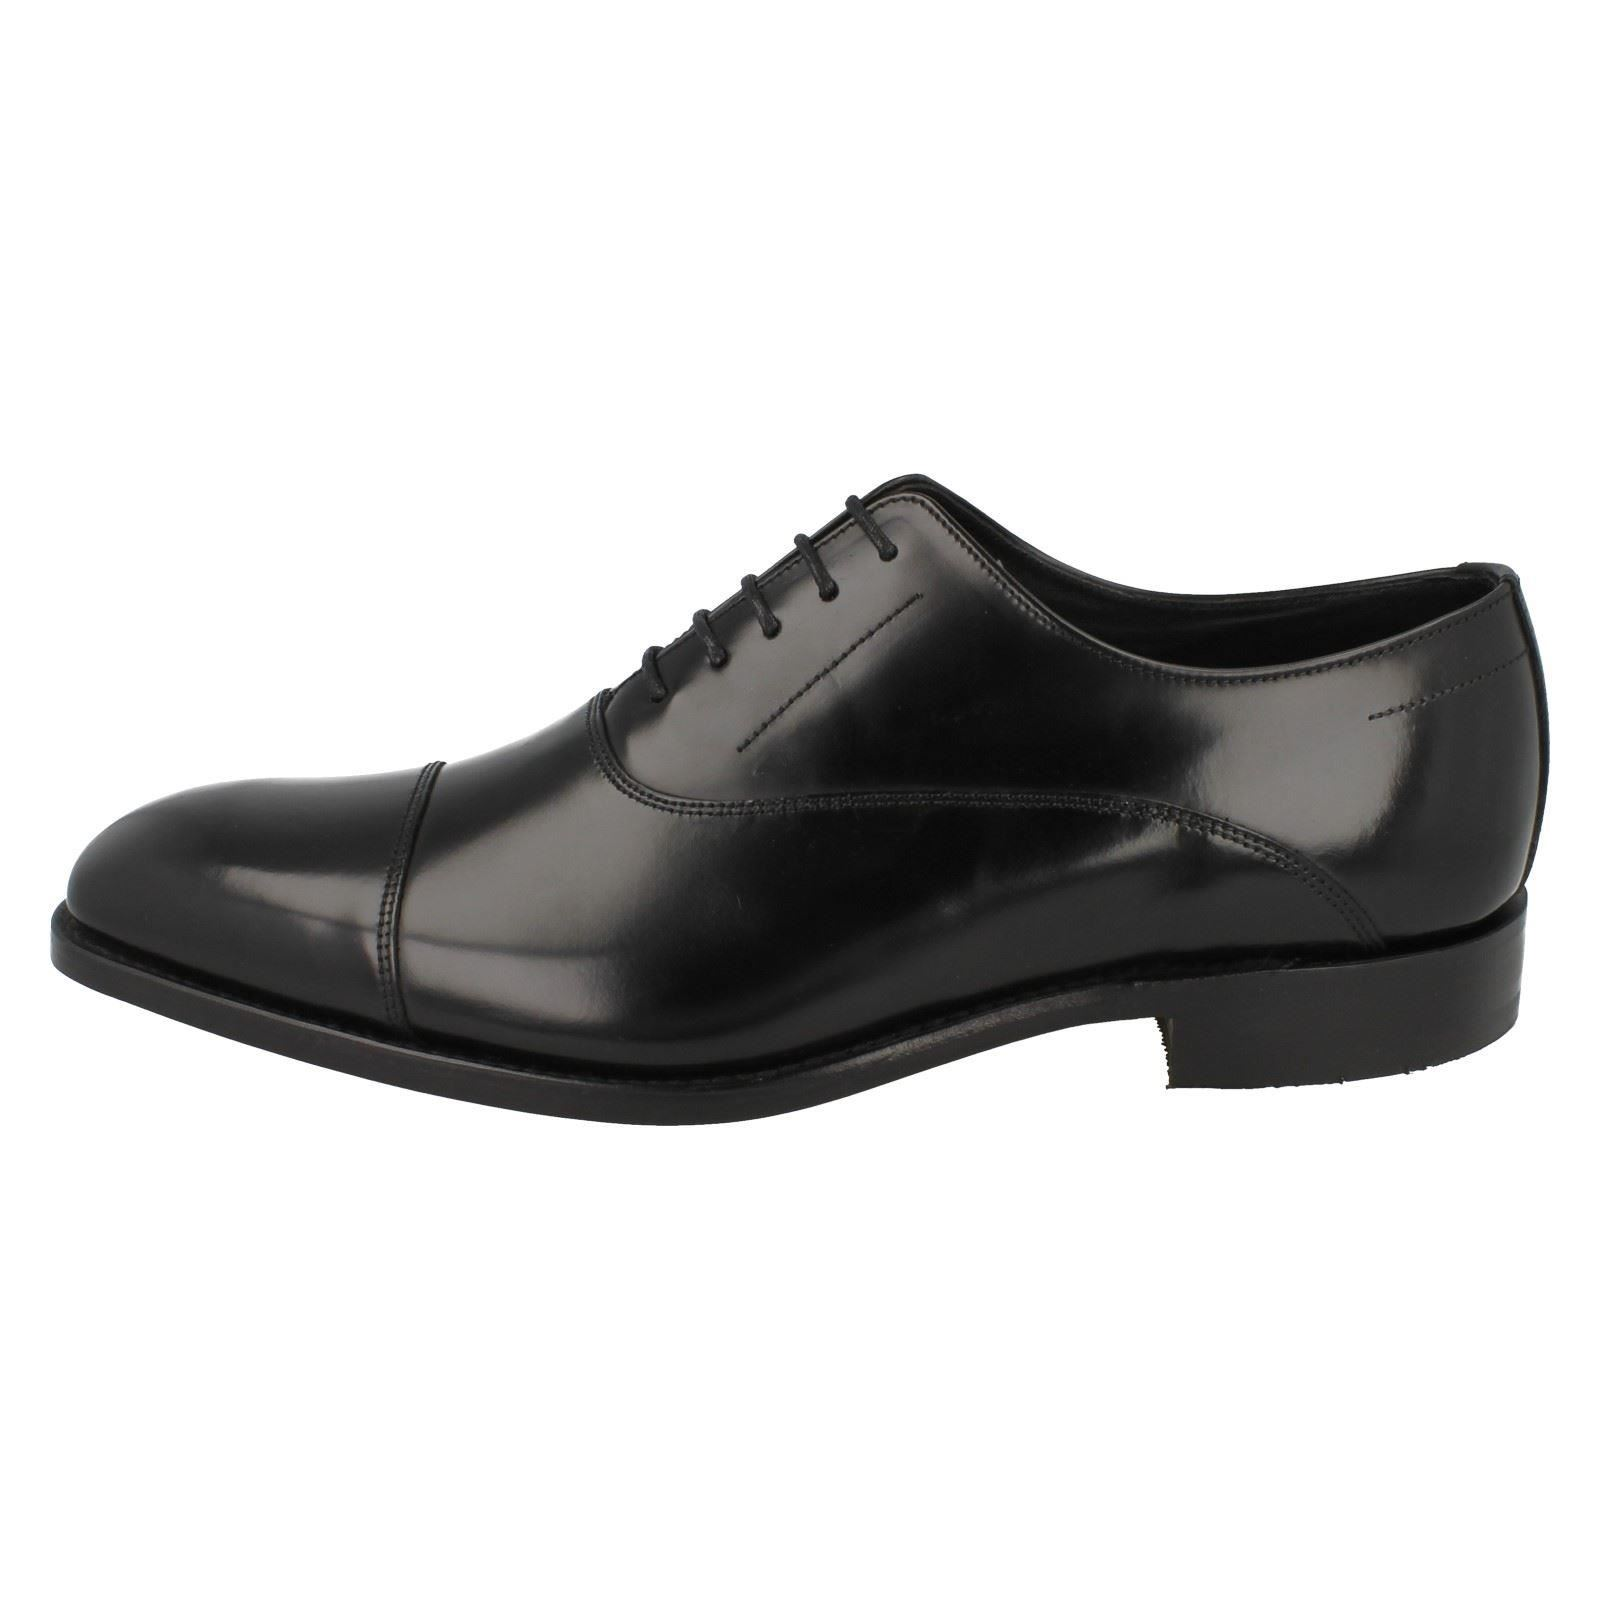 Mens Fitting Loake Formal Schuhes Fitting Mens F Style - Cagney cd111b